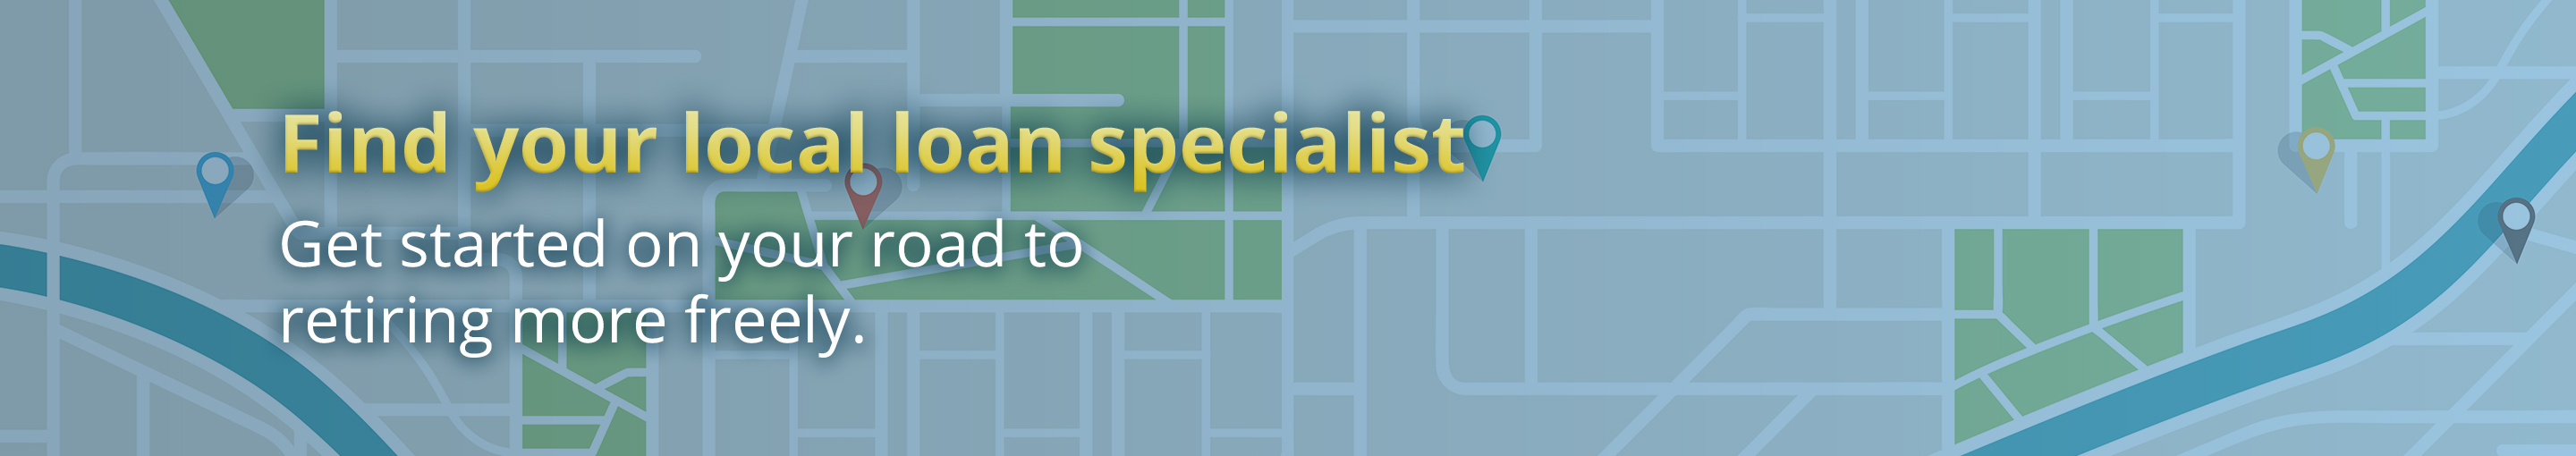 Find your local loan specialist